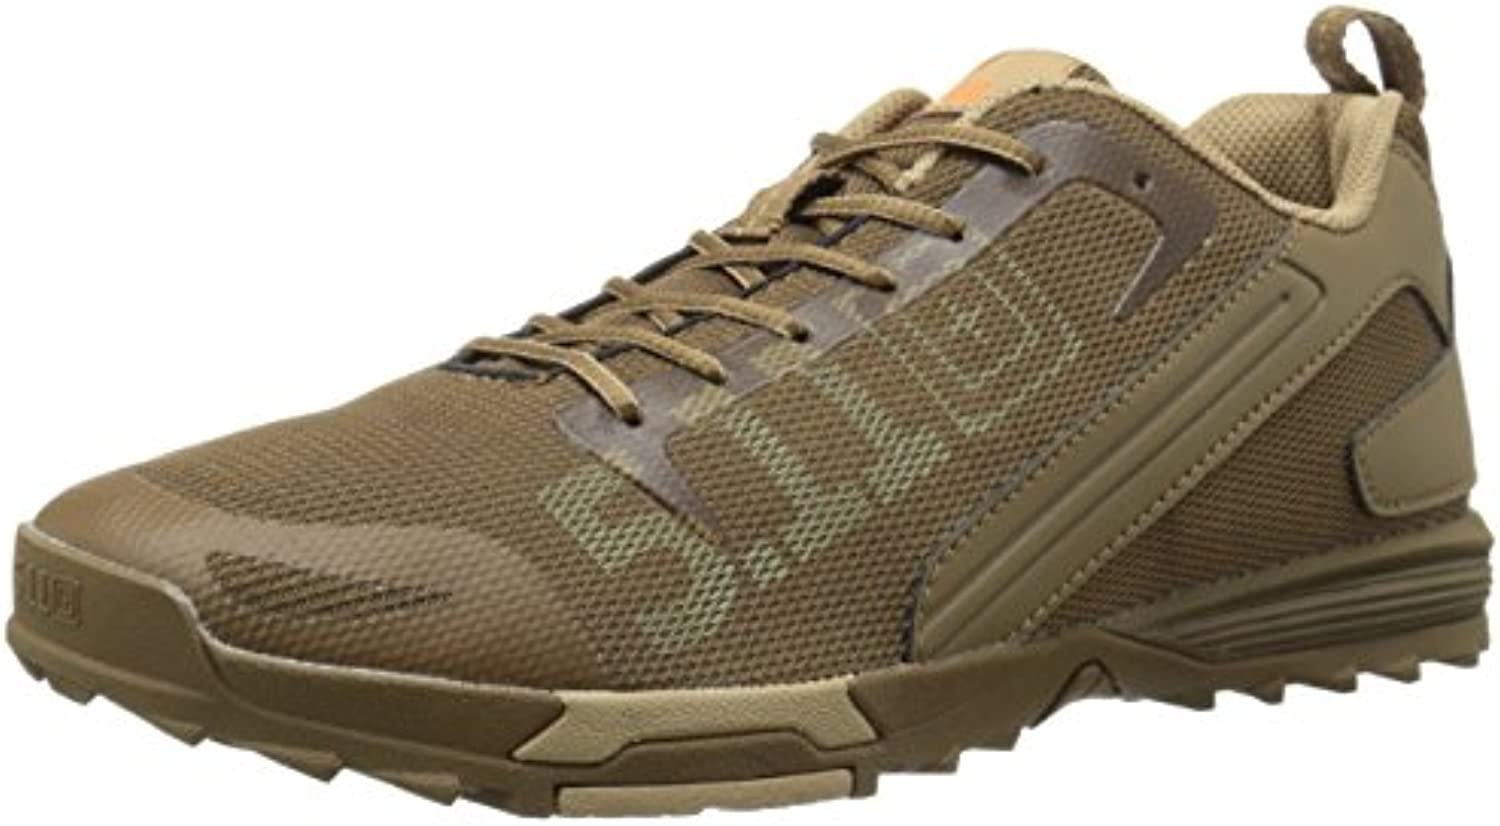 5.11 Tactical Recon Trainer Laufschuh Fitness Crossfit Dark Coyote 44.5